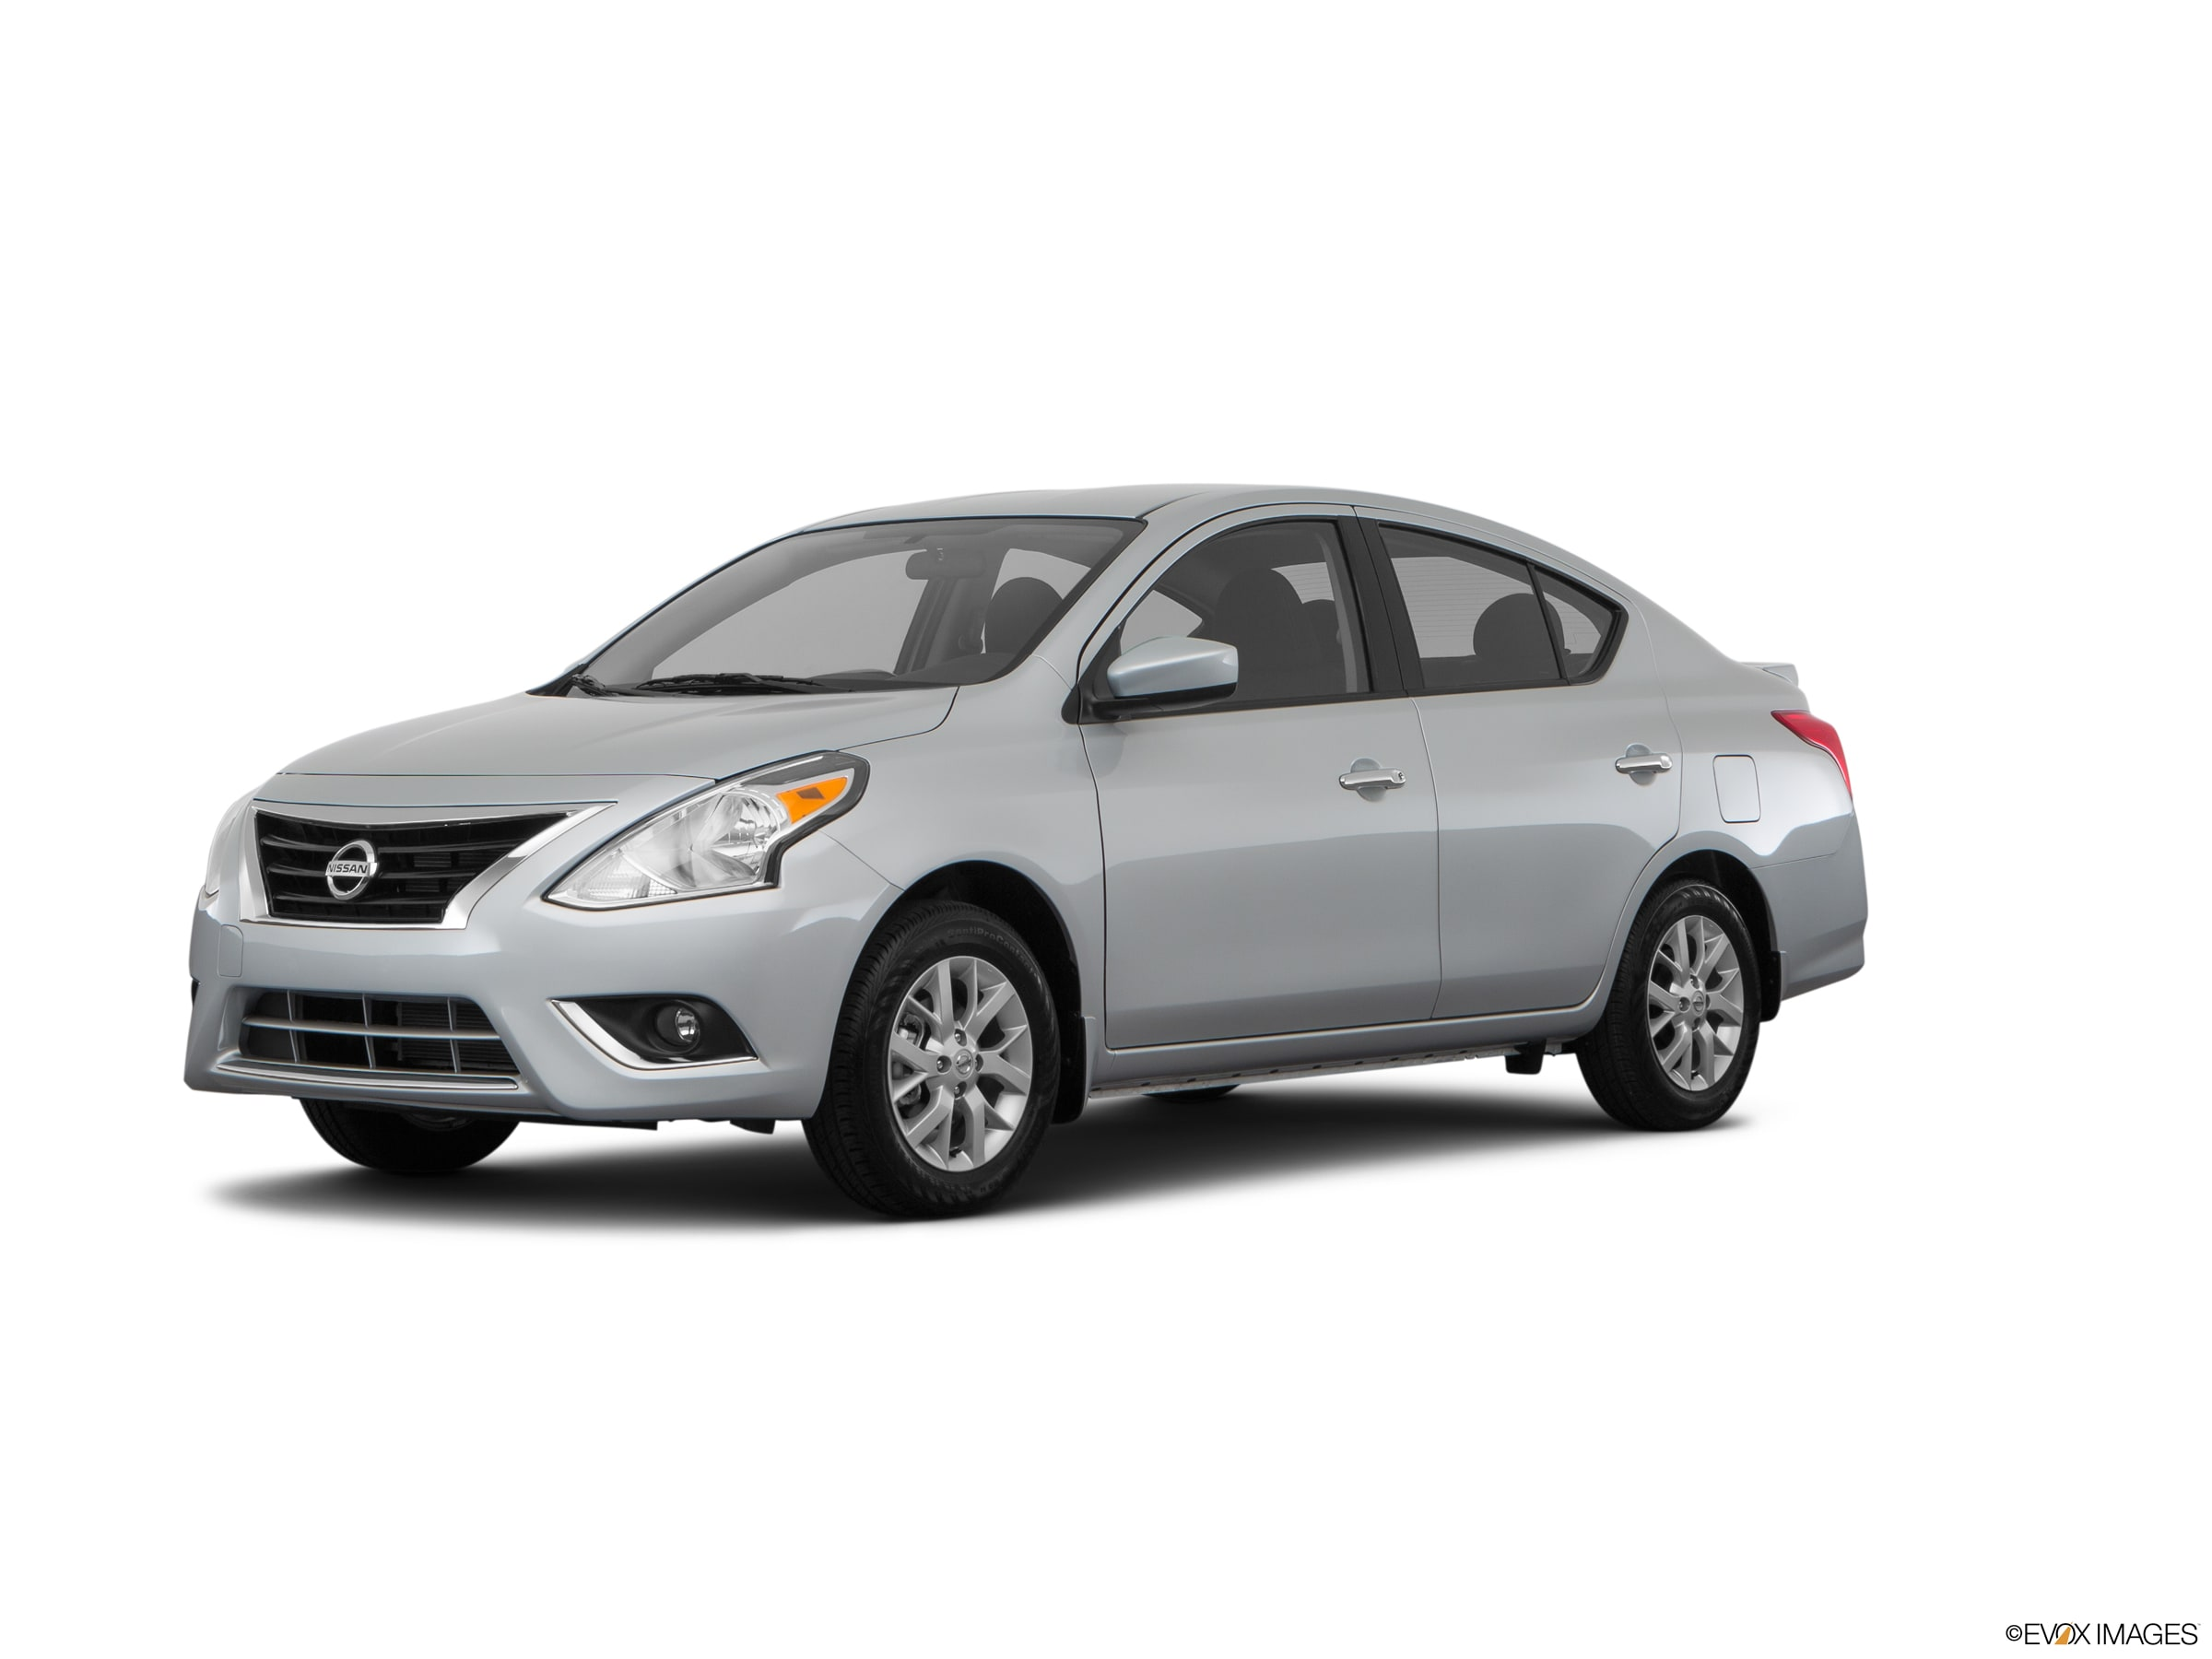 Used 2017 Nissan Versa For Sale Ocala Fl Stock L26820a Jenkins auto group sells and services acura, hyundai, mazda, kia, nissan, volkswagen and honda vehicles in the greater central florida area, including ocala florida, leesburg, gainesville. jenkins mazda